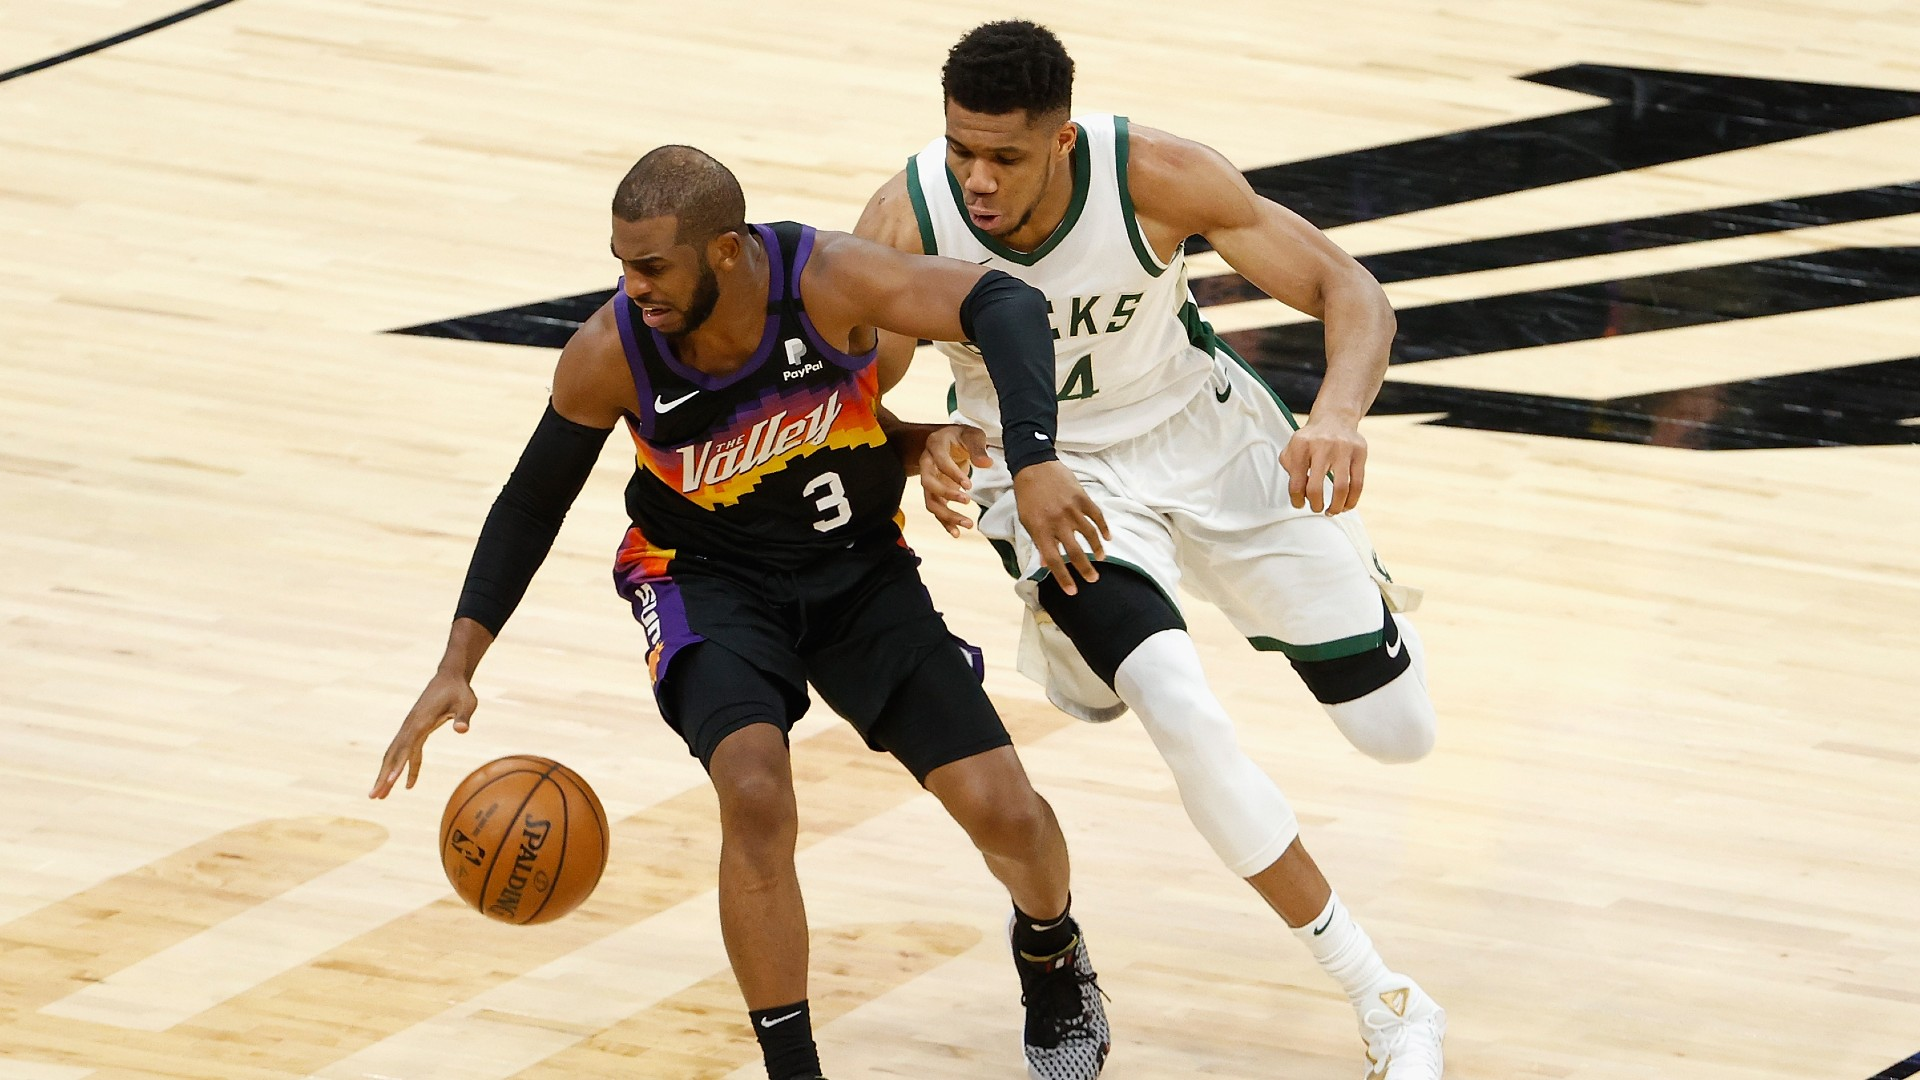 NBA playoff schedule 2021: Full bracket, dates, times, TV channels for play-in, playoff games